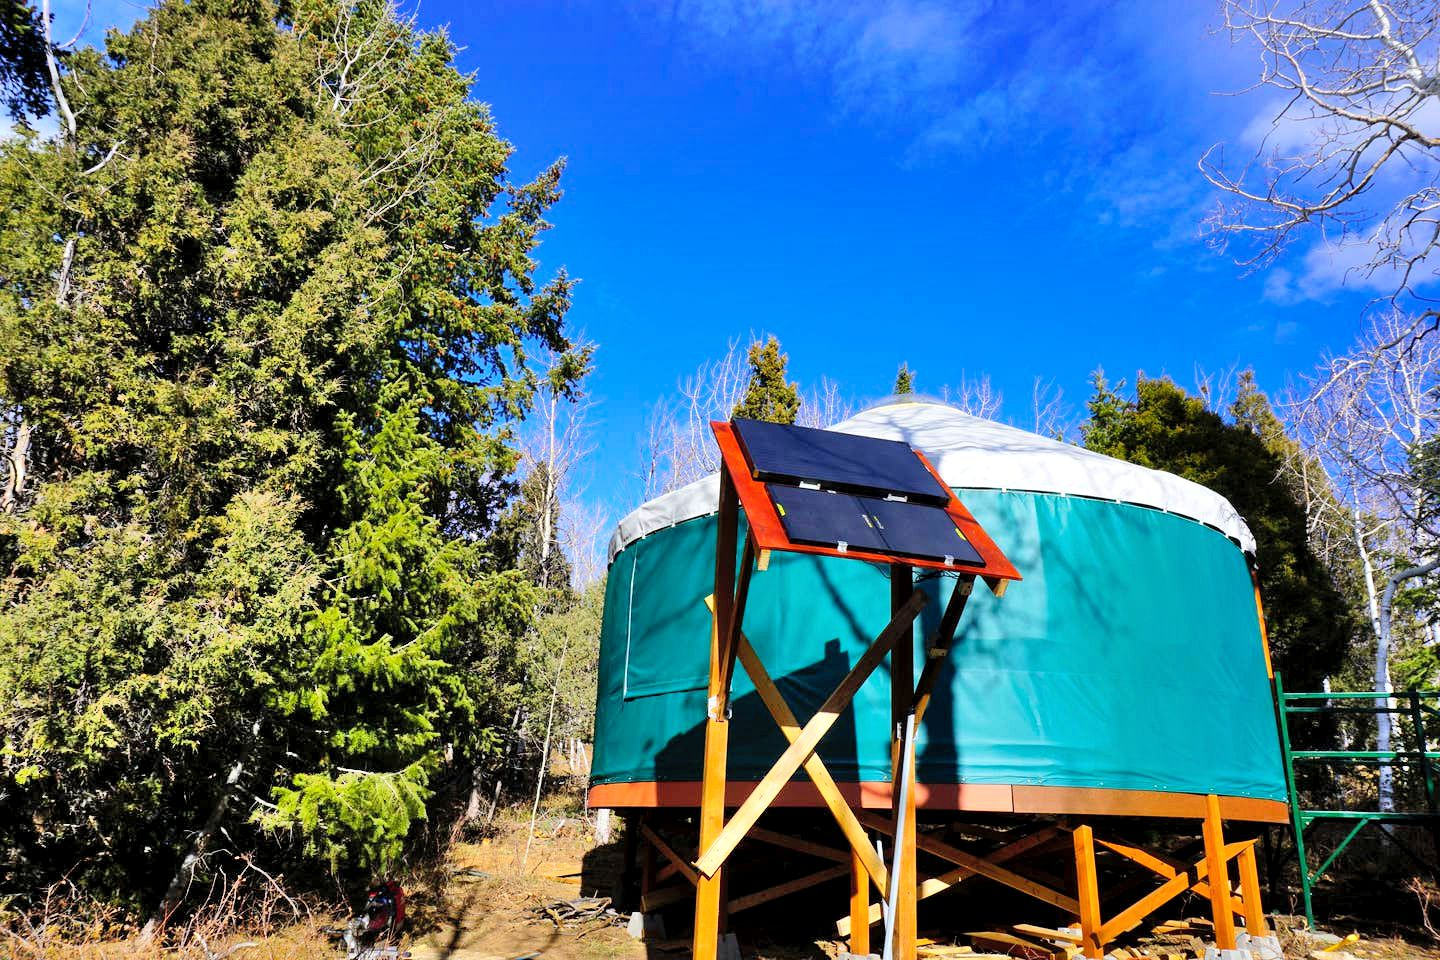 Yurts in Soldier Summit, Utah.